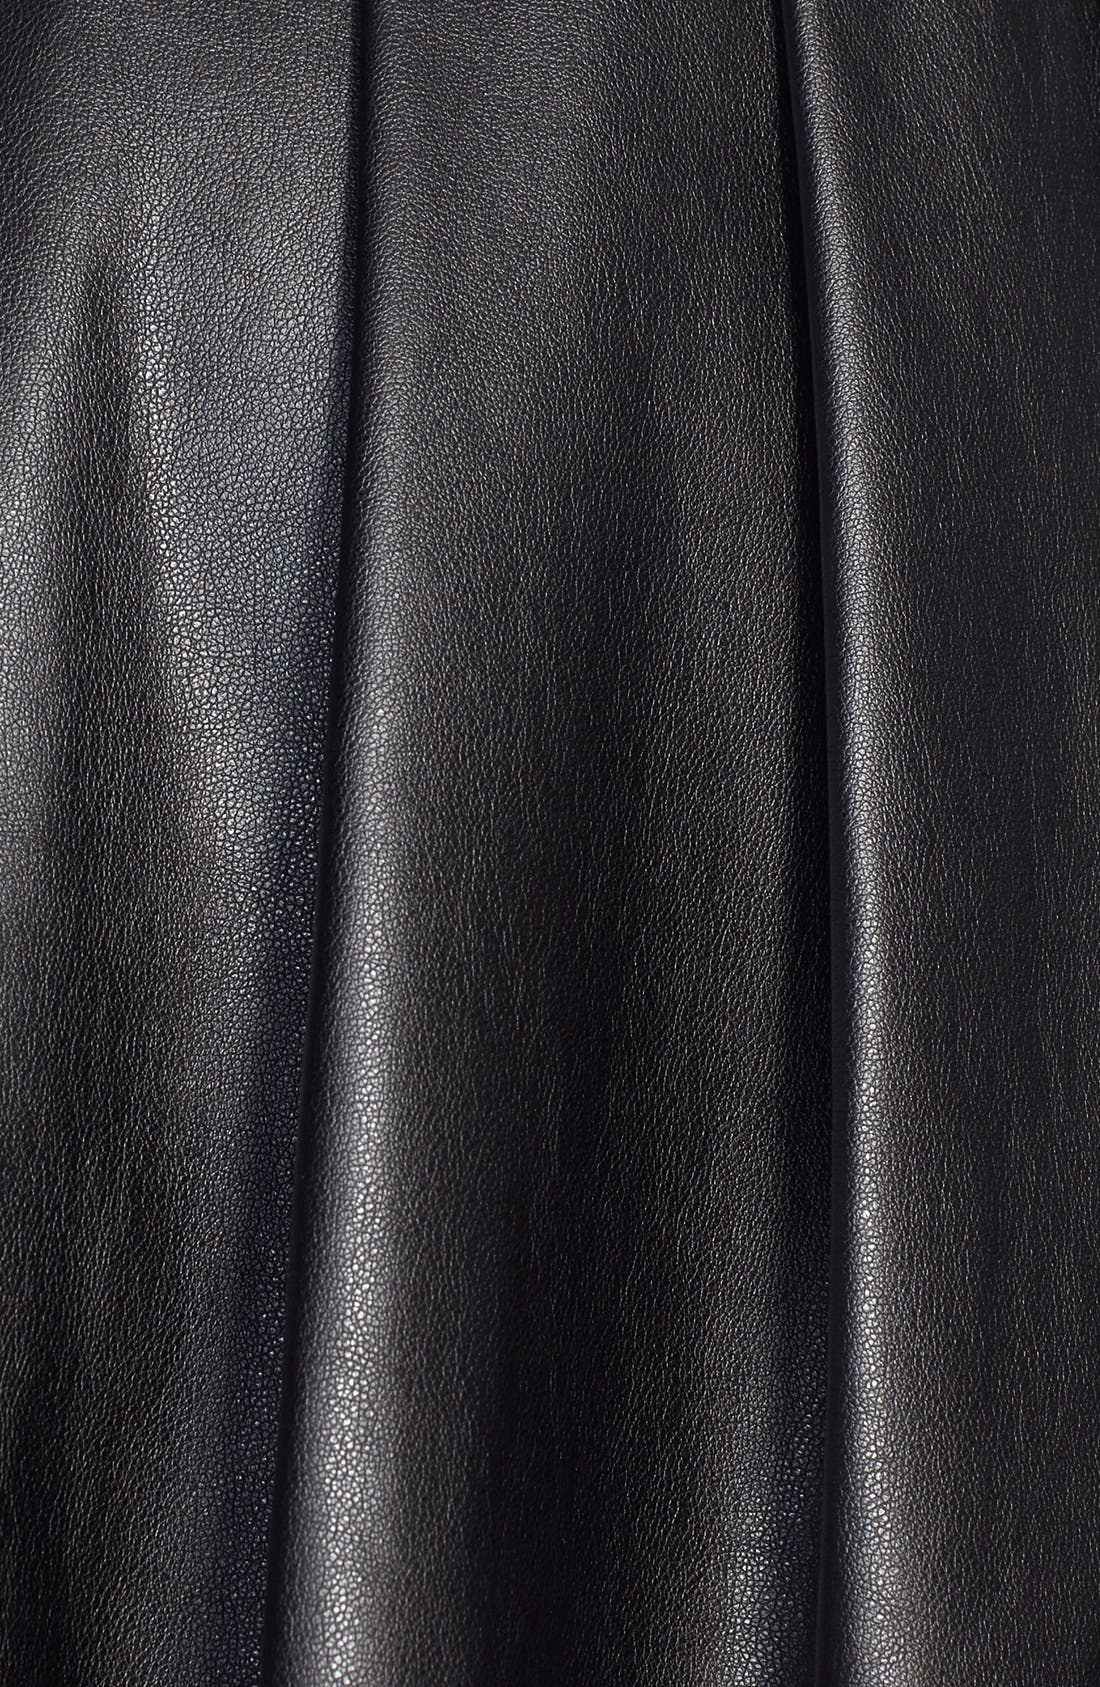 Alternate Image 3  - Ella Moss 'Raquel' Pleated Faux Leather Skirt